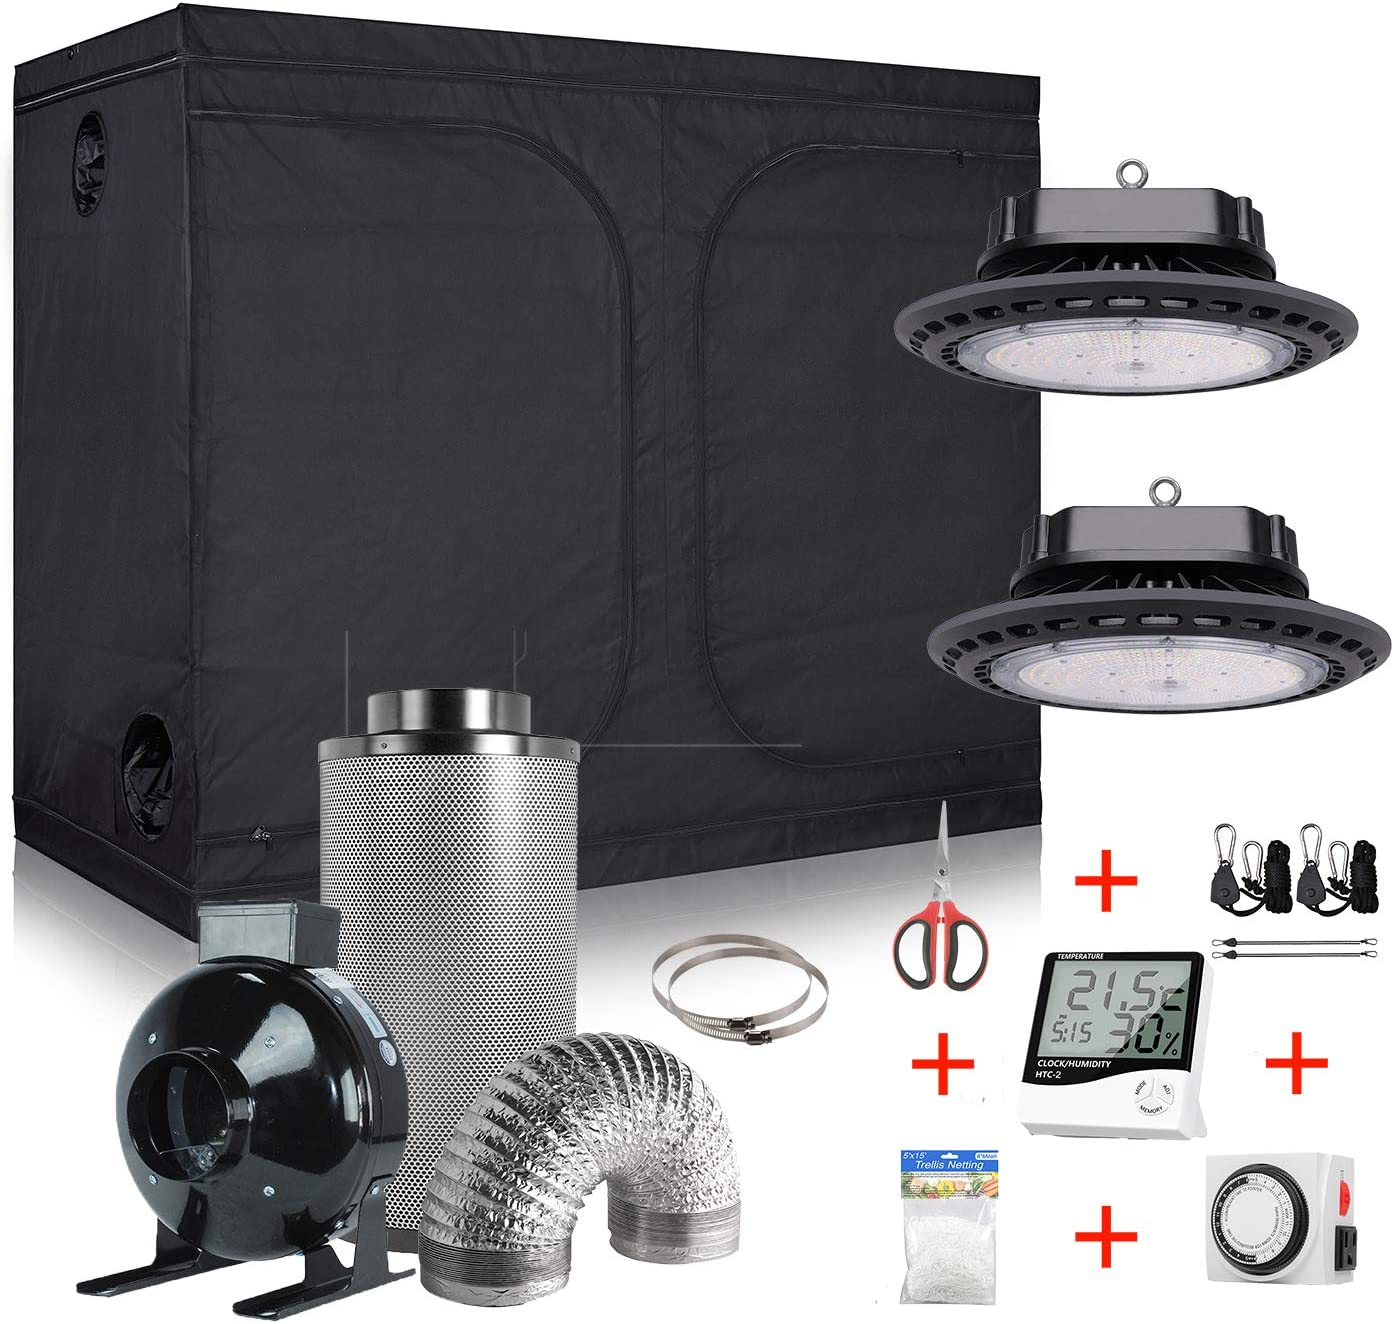 Hydro Plus Grow Year-end gift Tent Complete Kit UFO 300W Sunlike LED Ligh Max 64% OFF